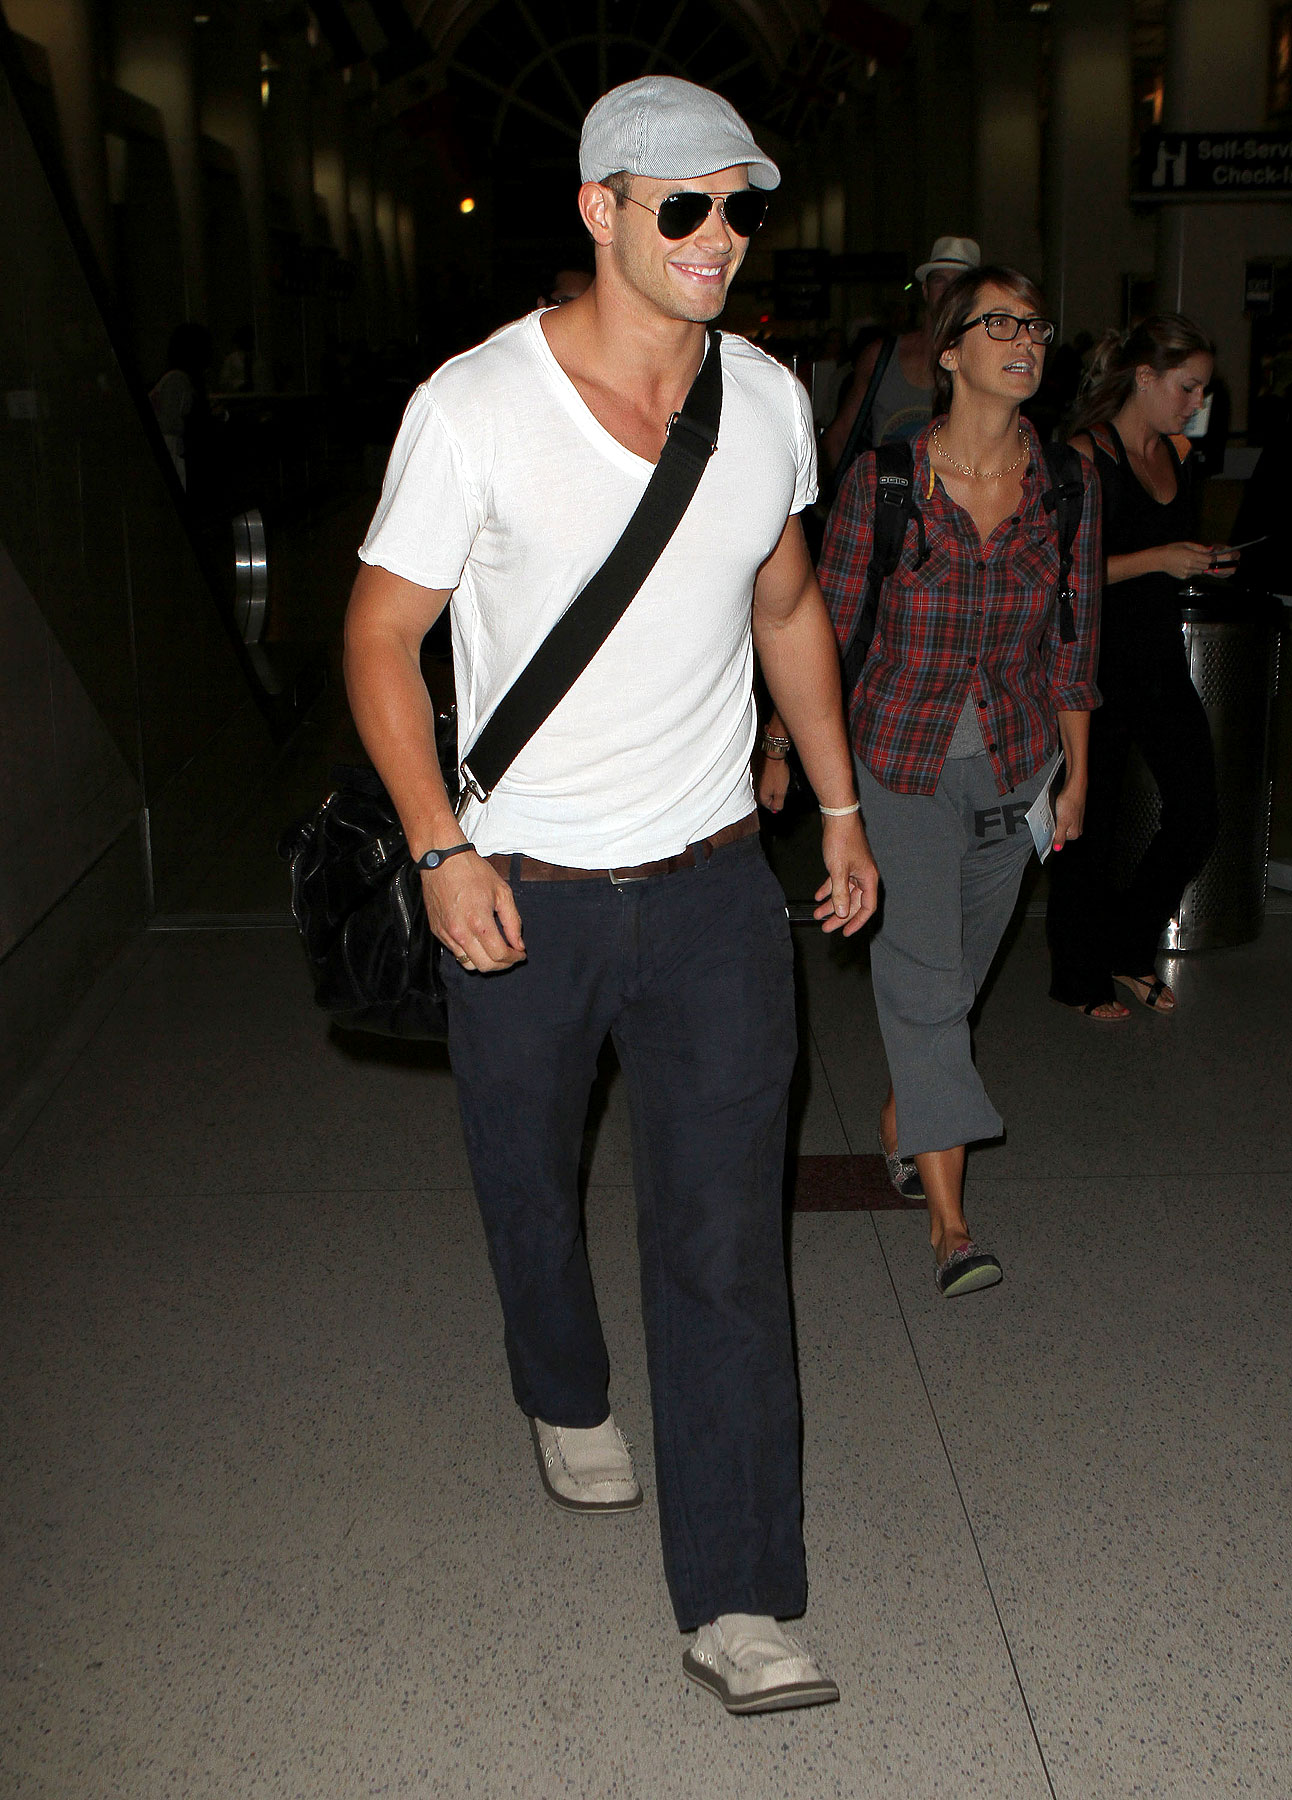 Kellan Lutz Flies the Really Friendly Skies (PHOTOS)